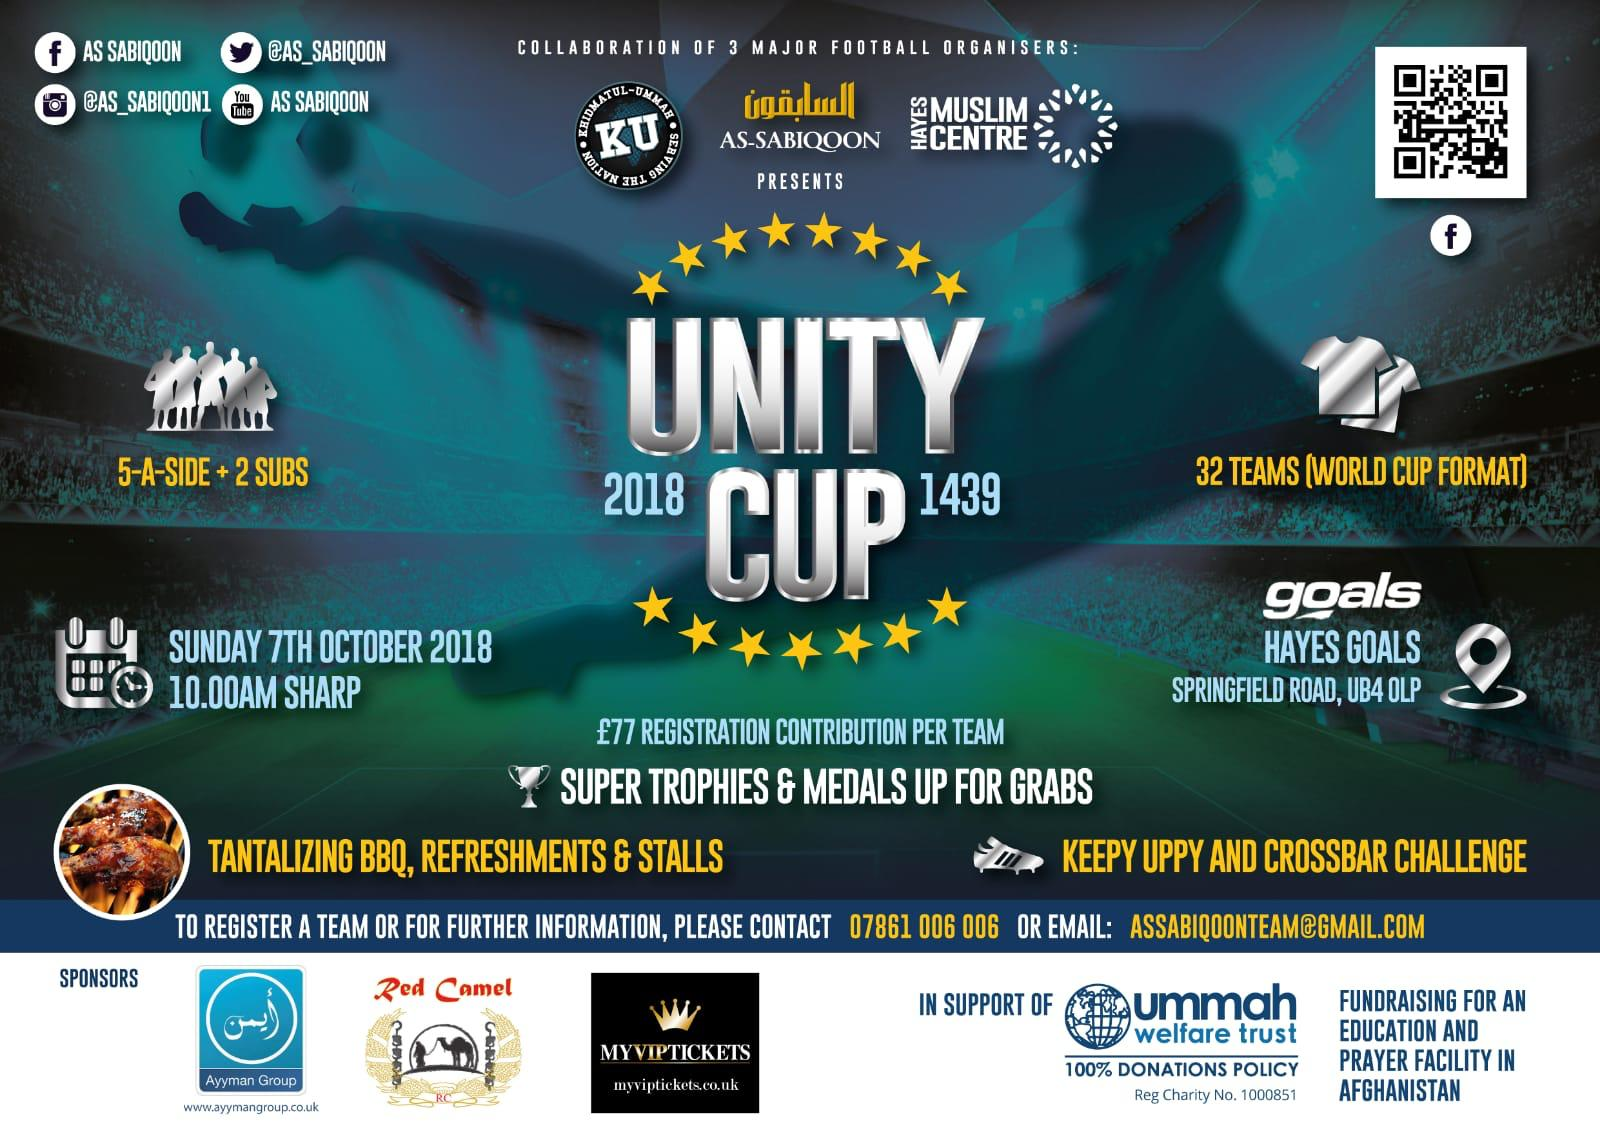 Unity Cup 2018